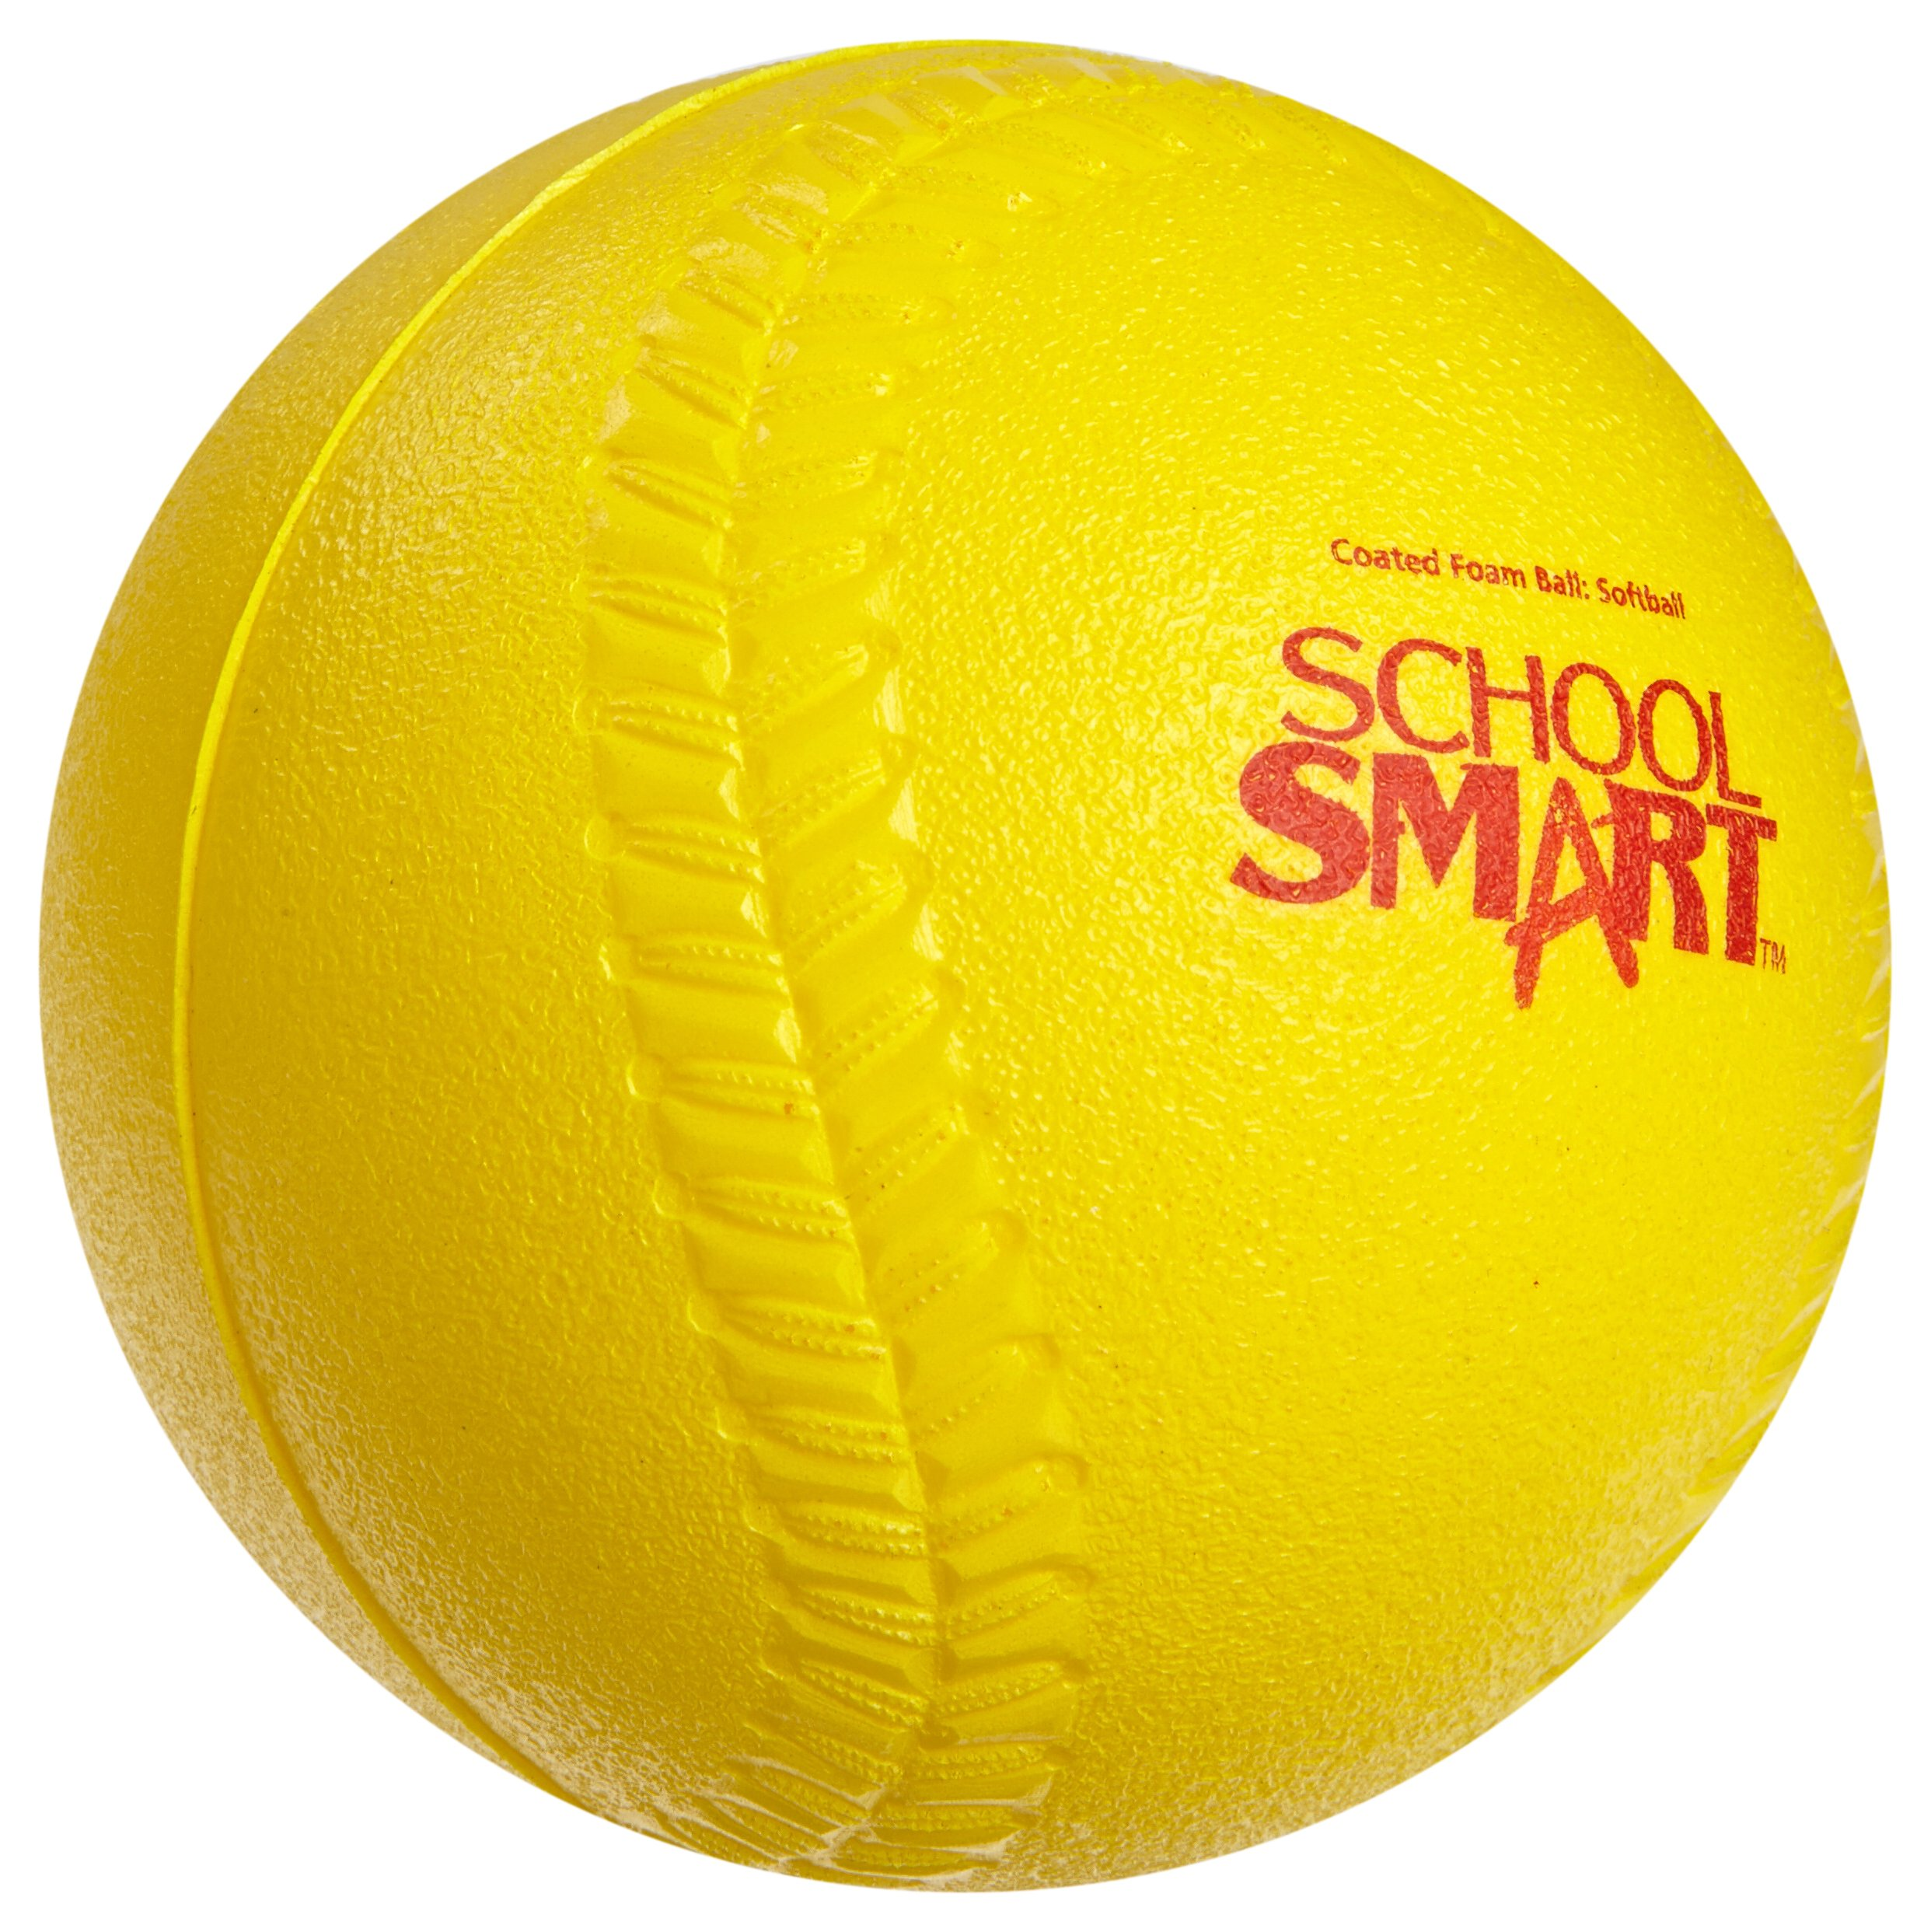 Sportime Coated Foam Softball - High-Visibility Yellow by Sportime